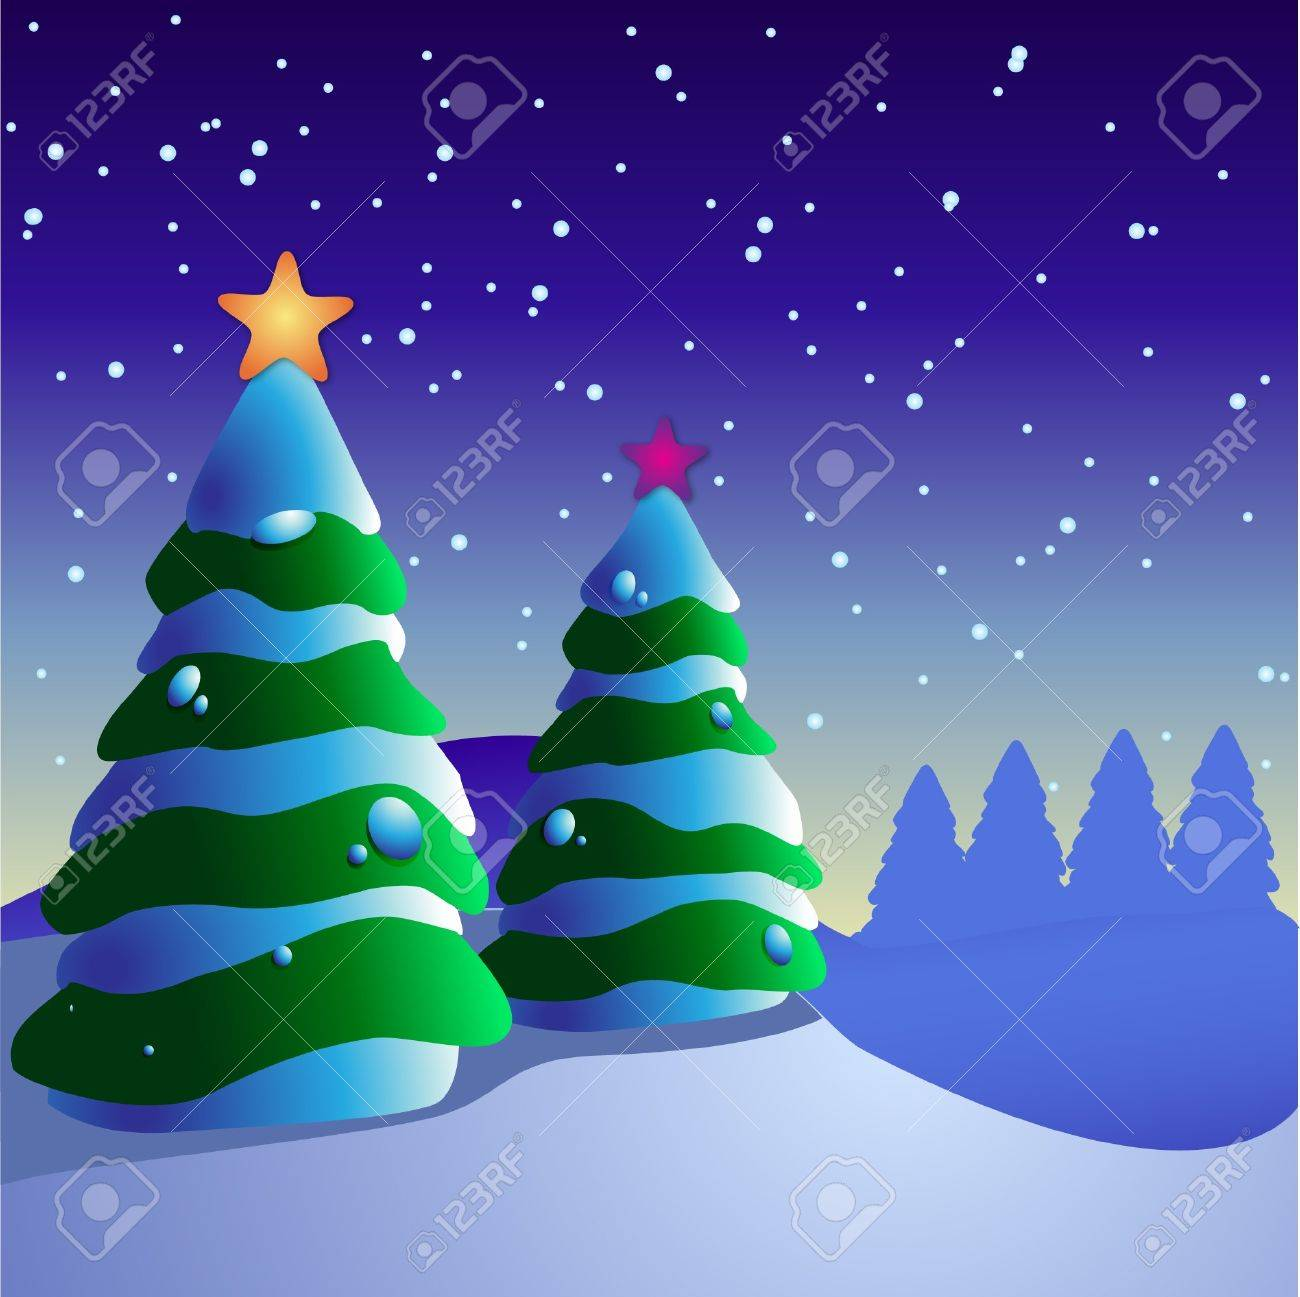 illustration of winter field with two pine trees decorated with Christmas decorations Stock Illustration - 4065565